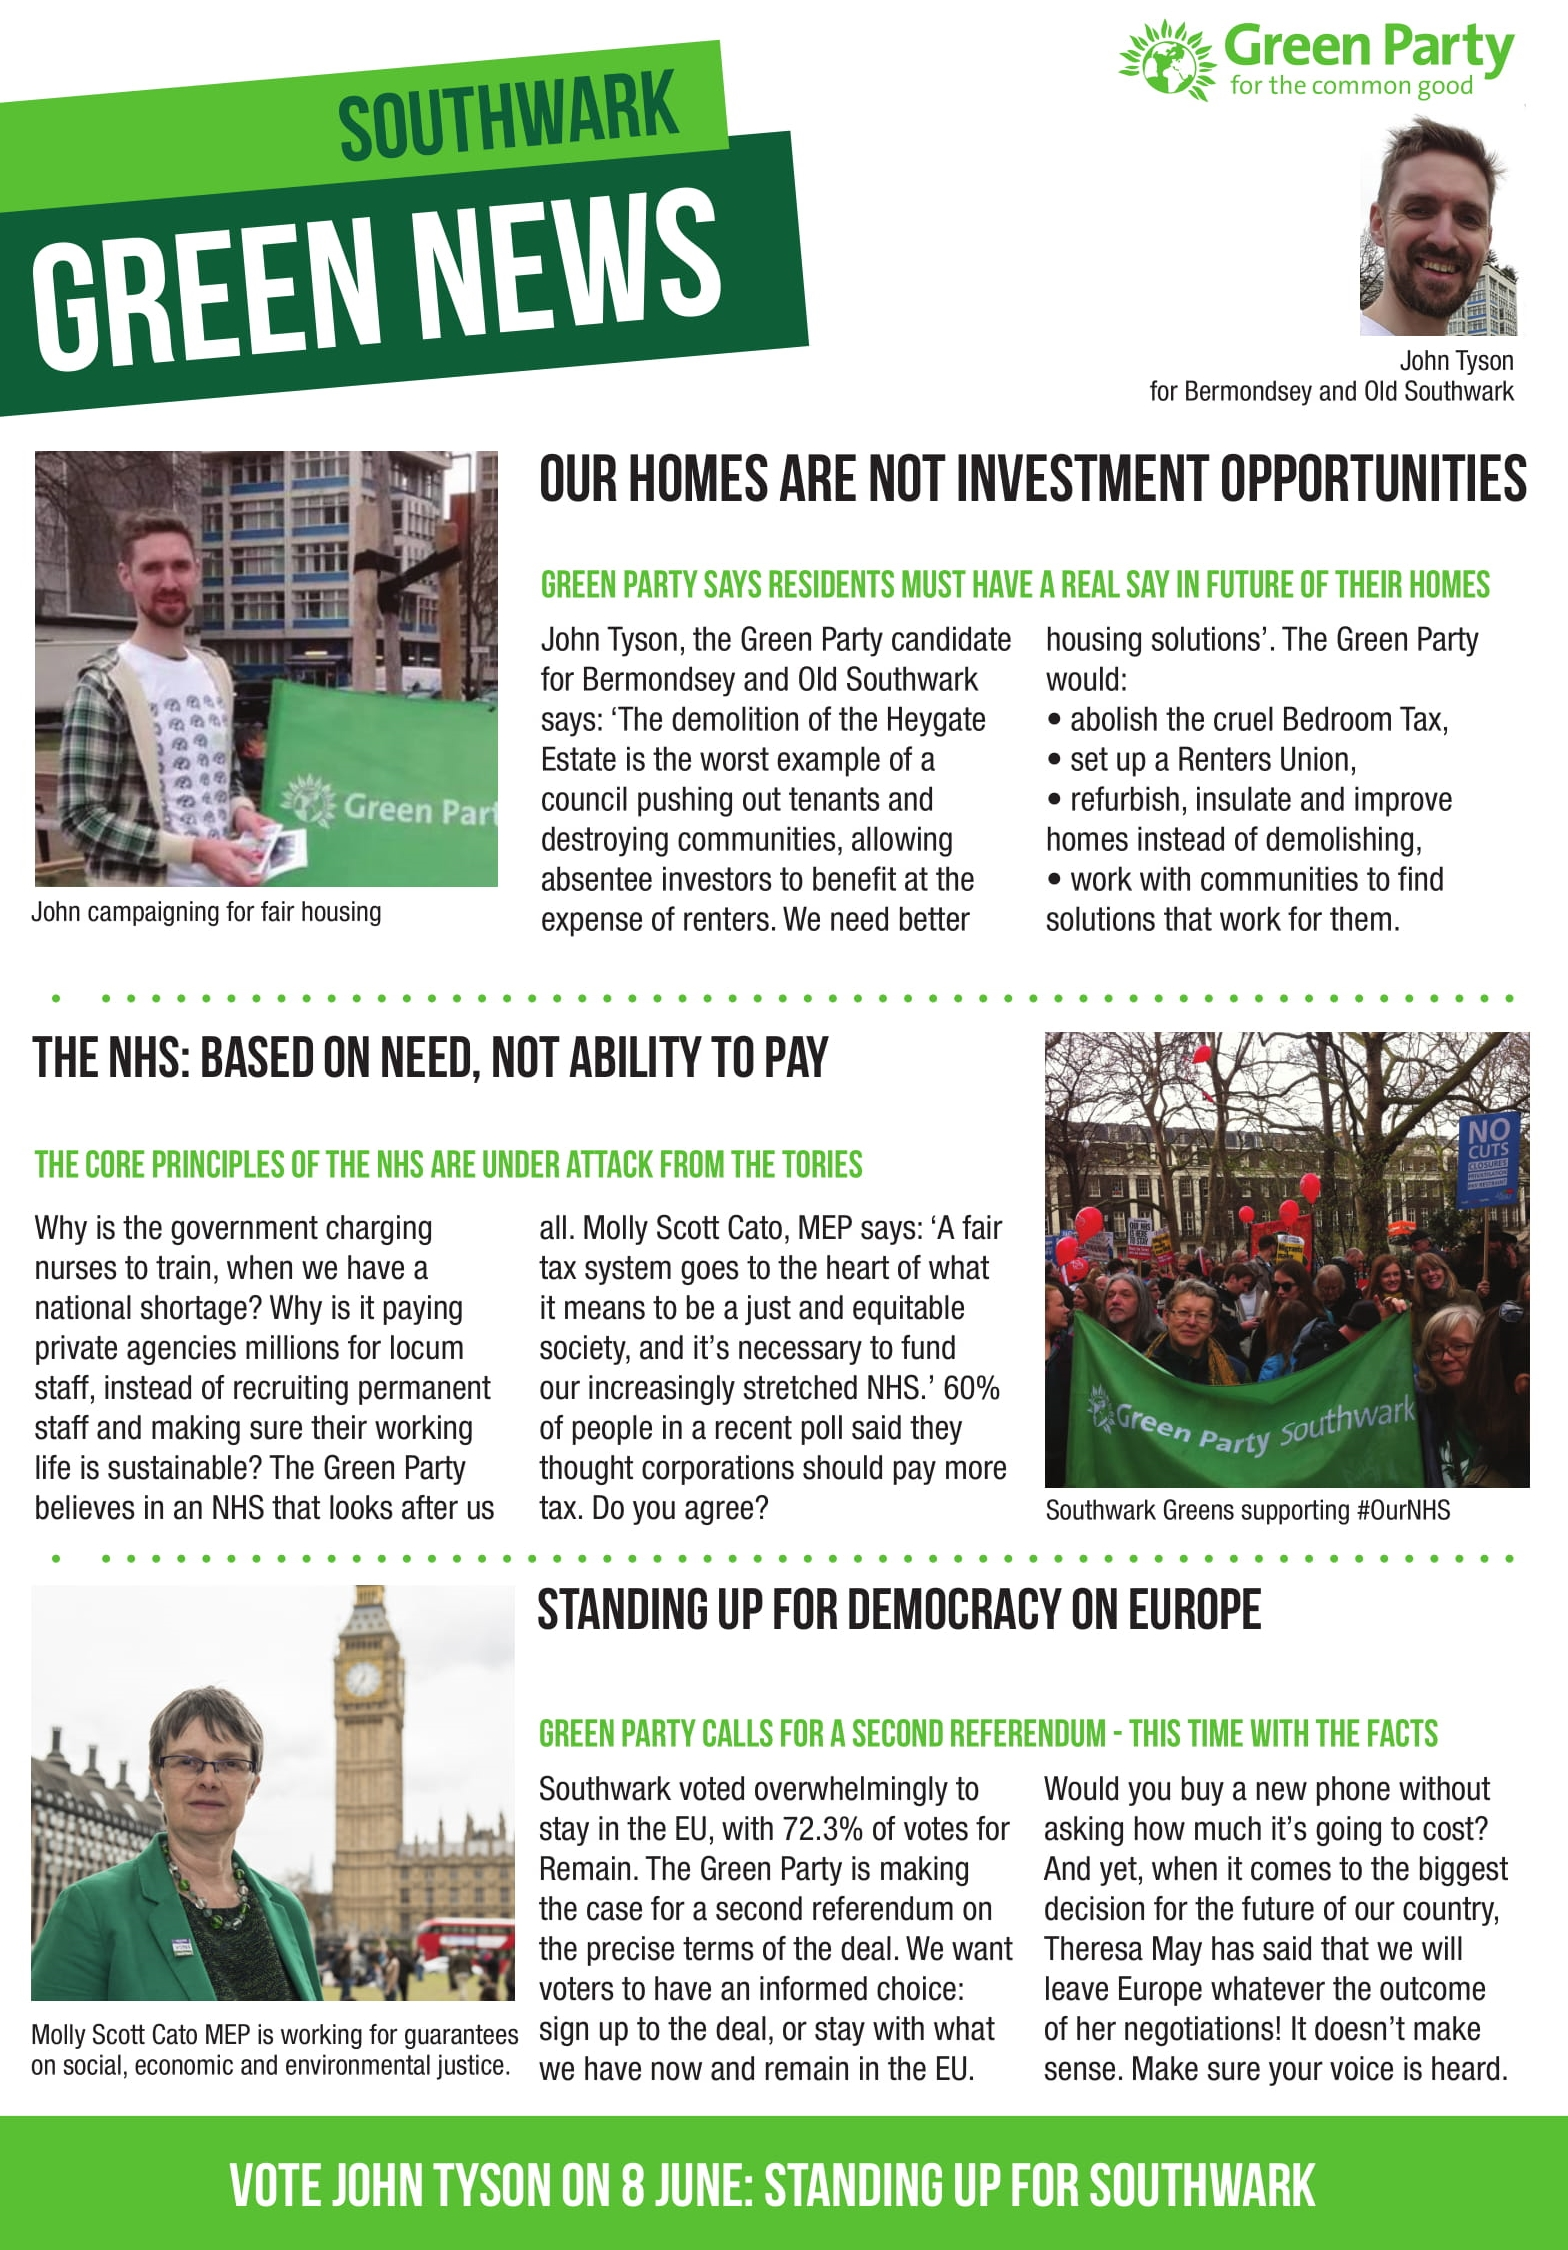 02a._Southwark_Green_News_May_2017-1.jpg